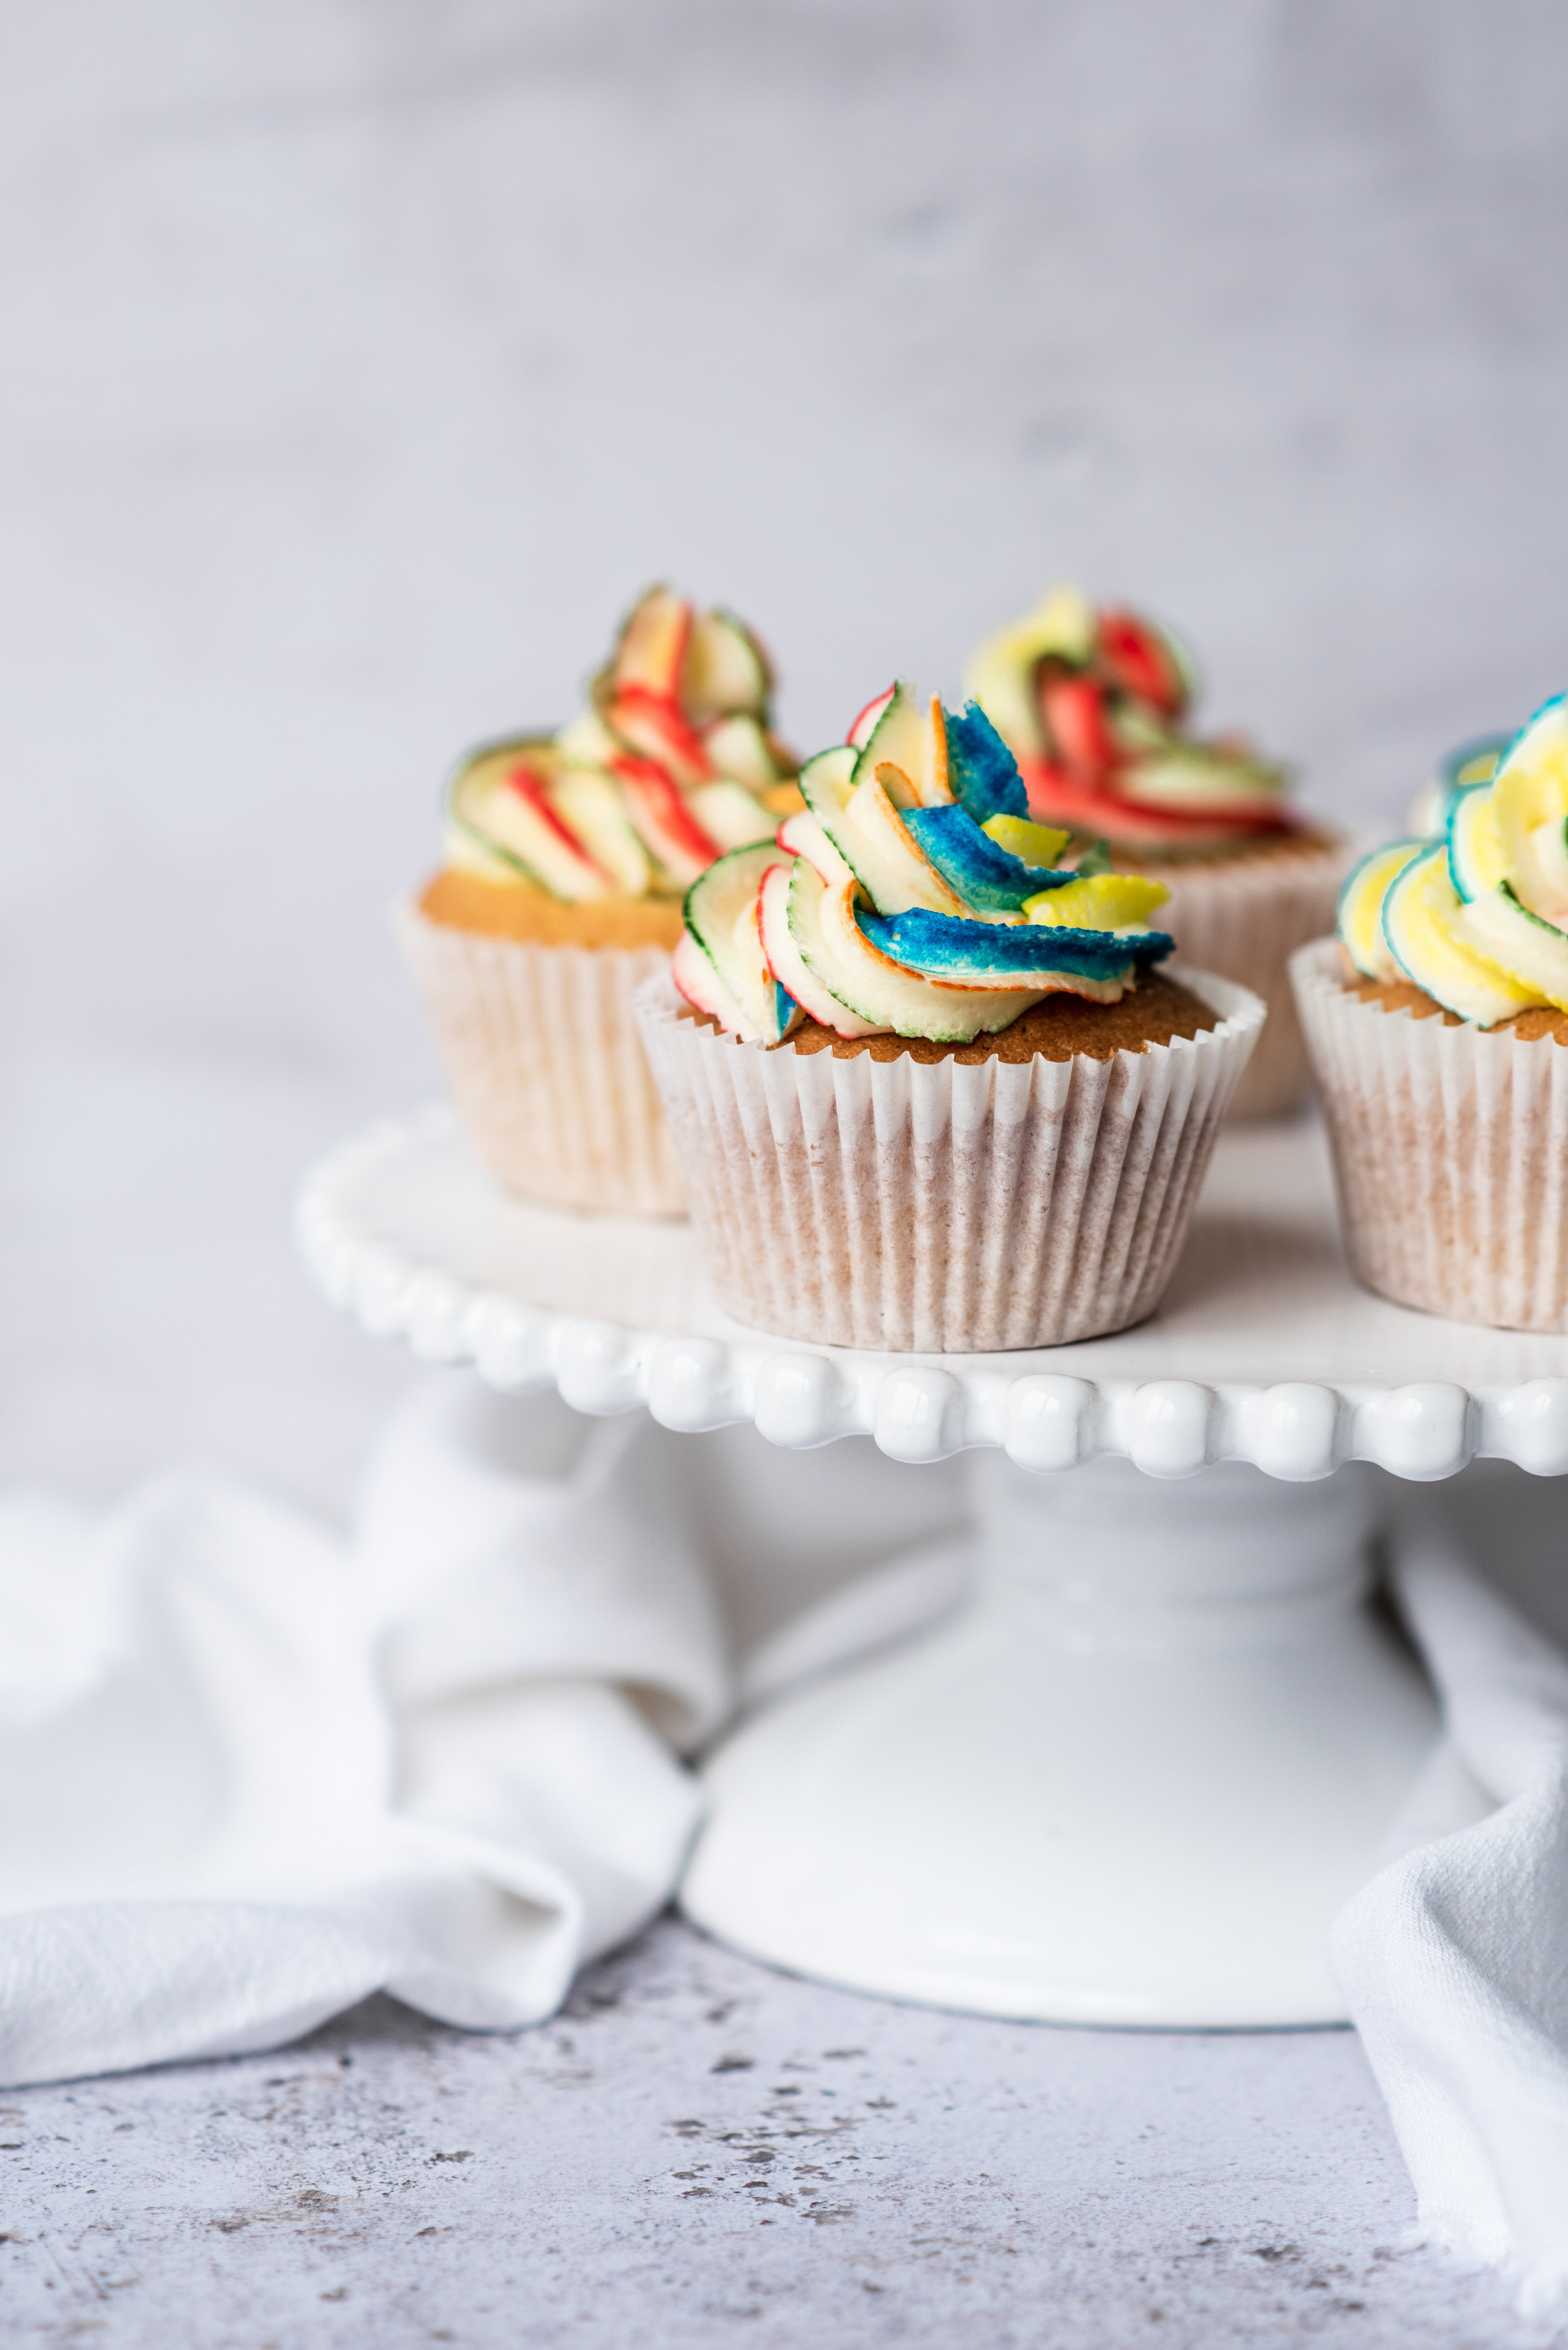 rainbow buttercream on a cupcake sitting on a cake stand